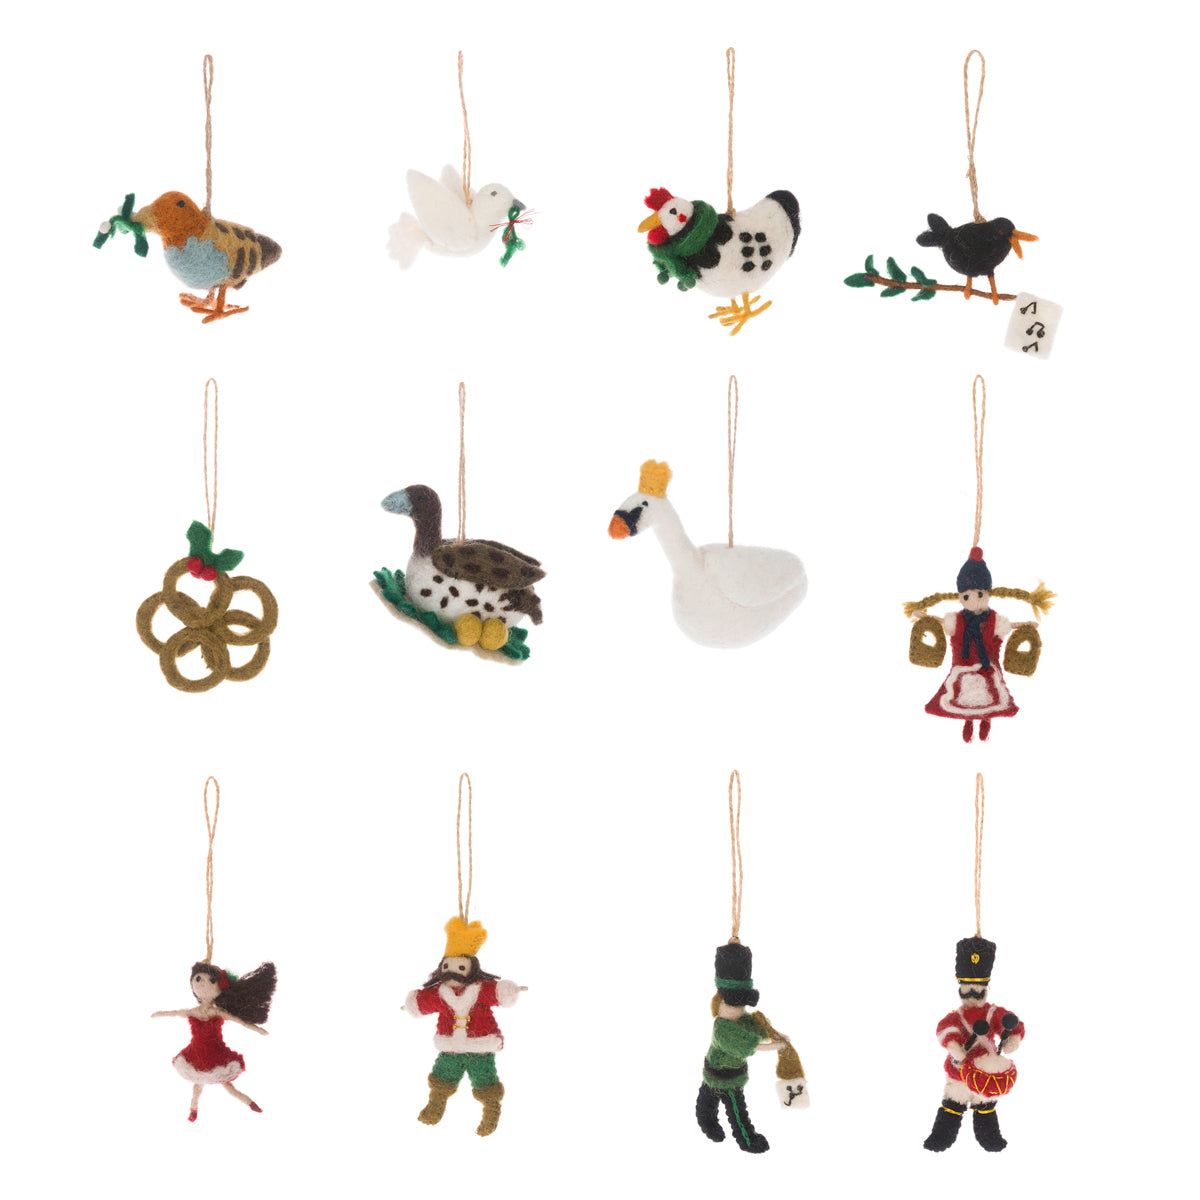 12 Days Of Christmas Felt Decorations (Set of 12)